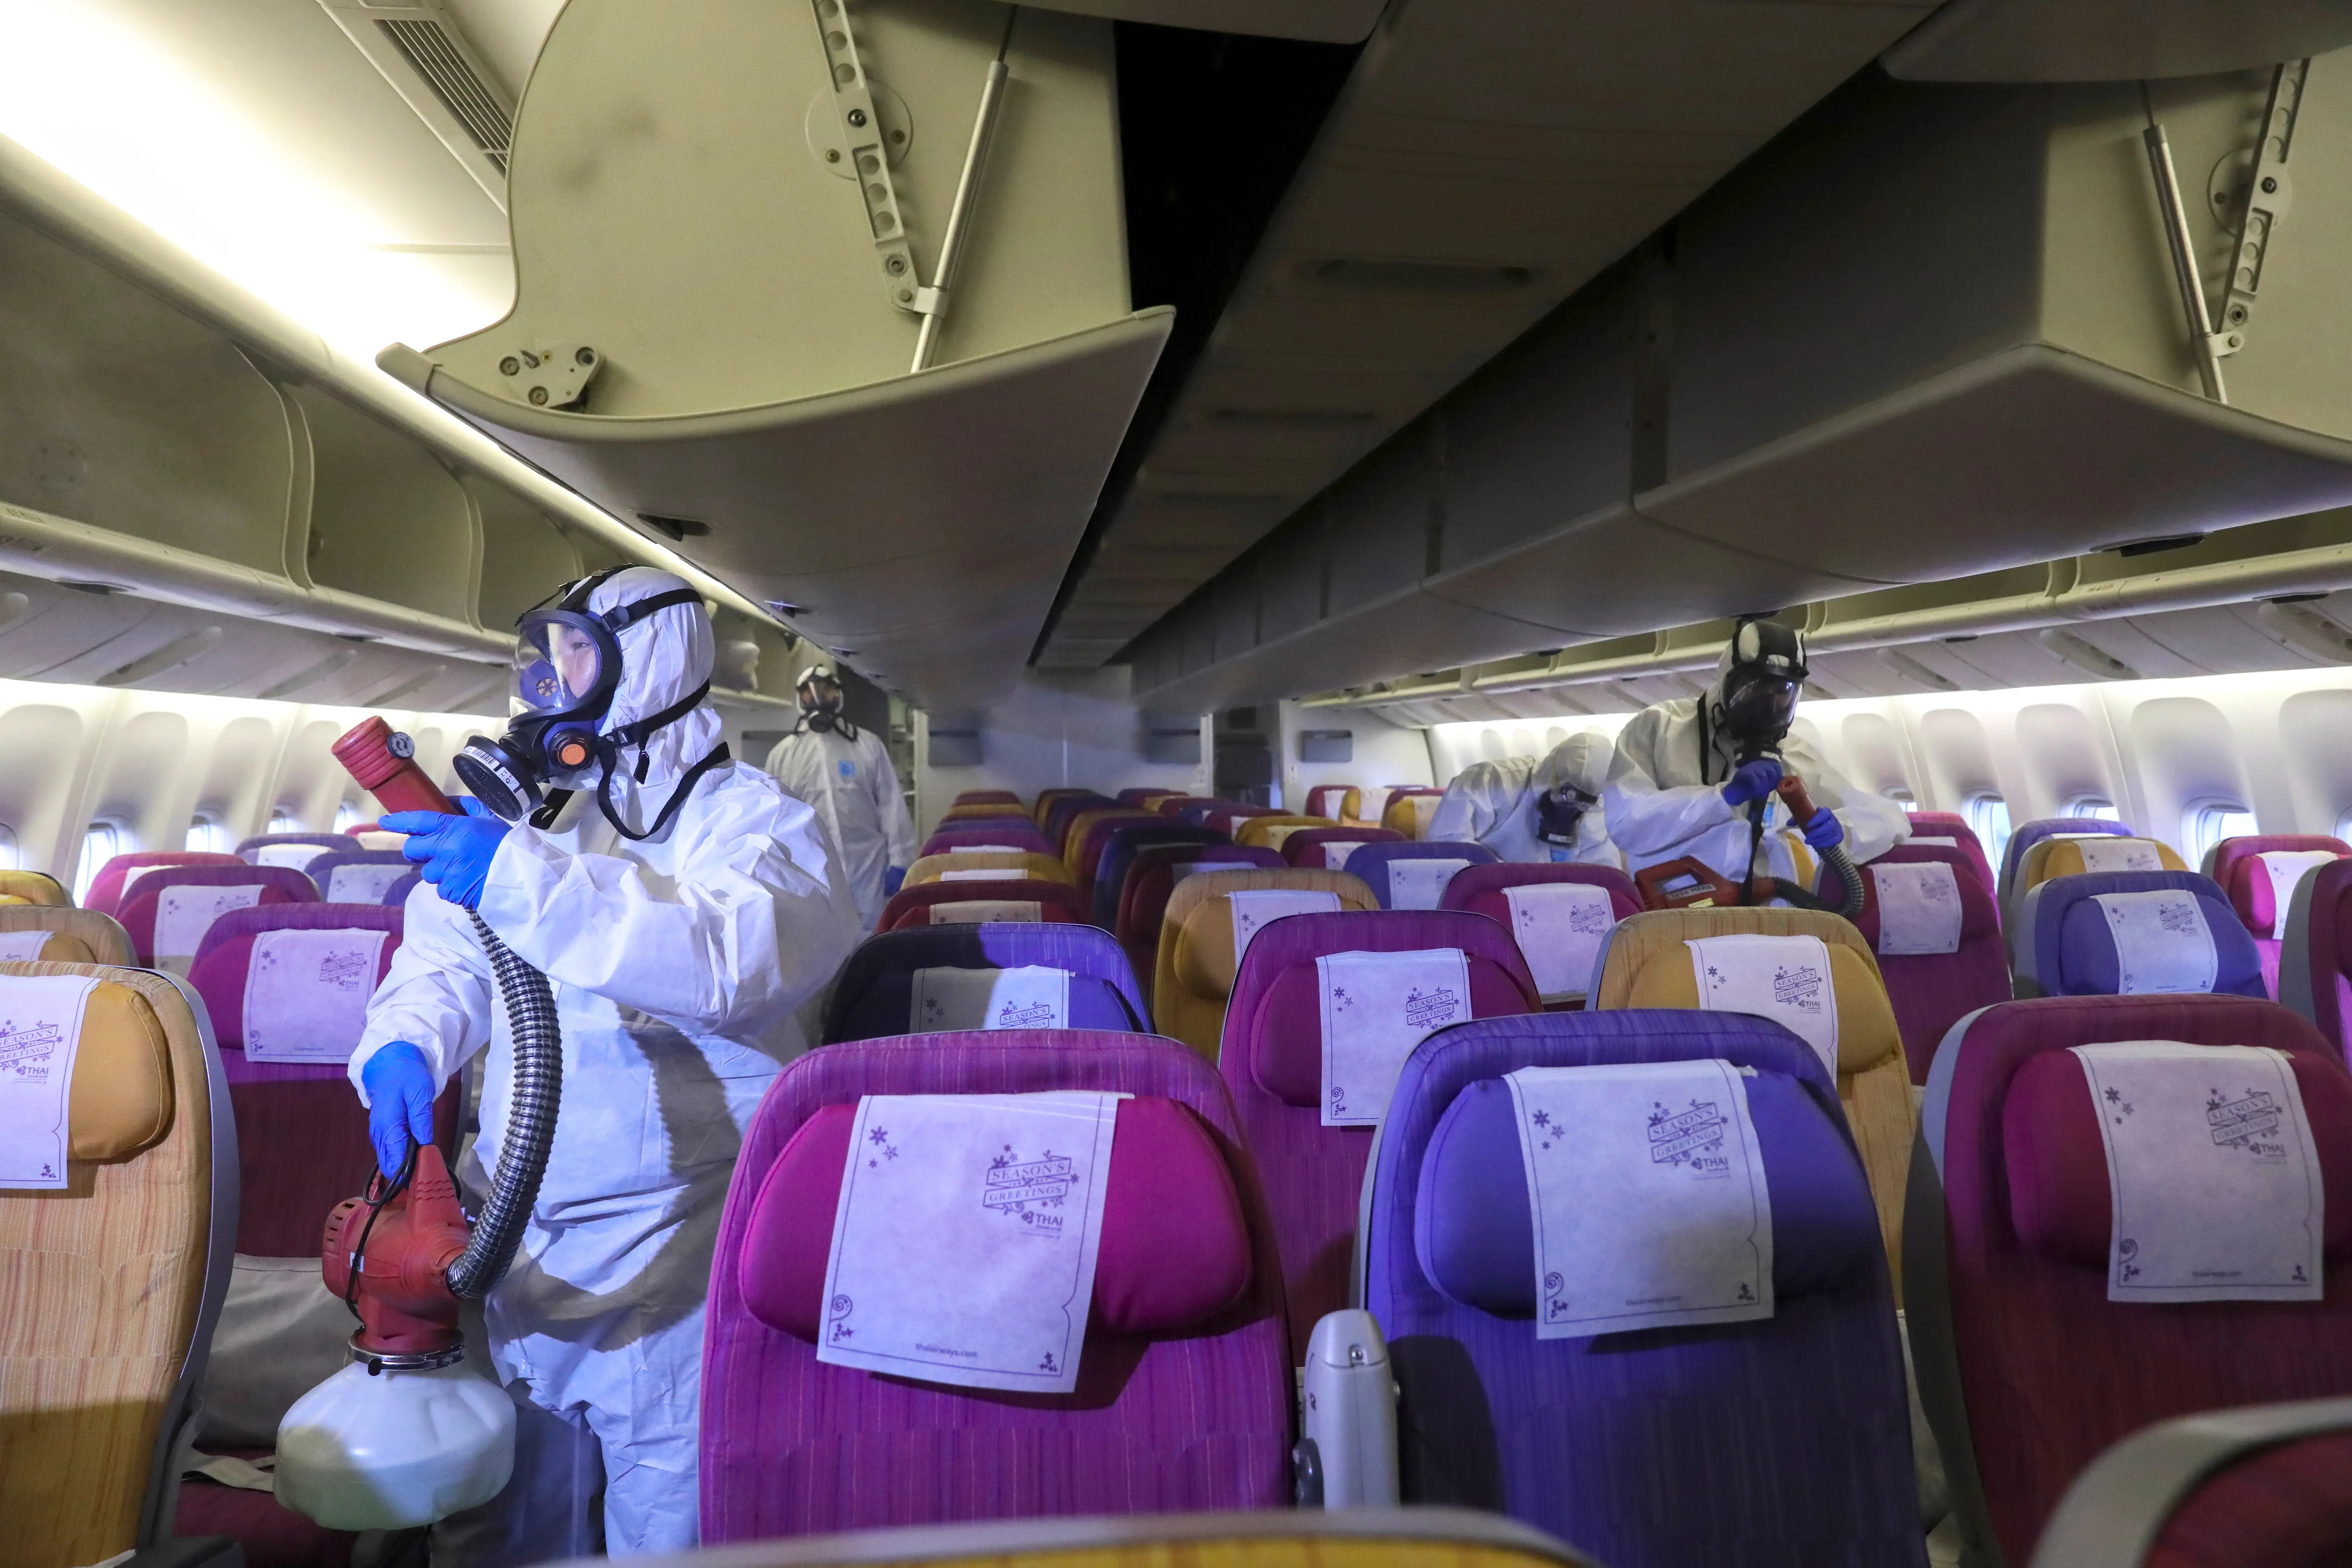 Coronavirus poses substantial risk to airlines and air travel ...